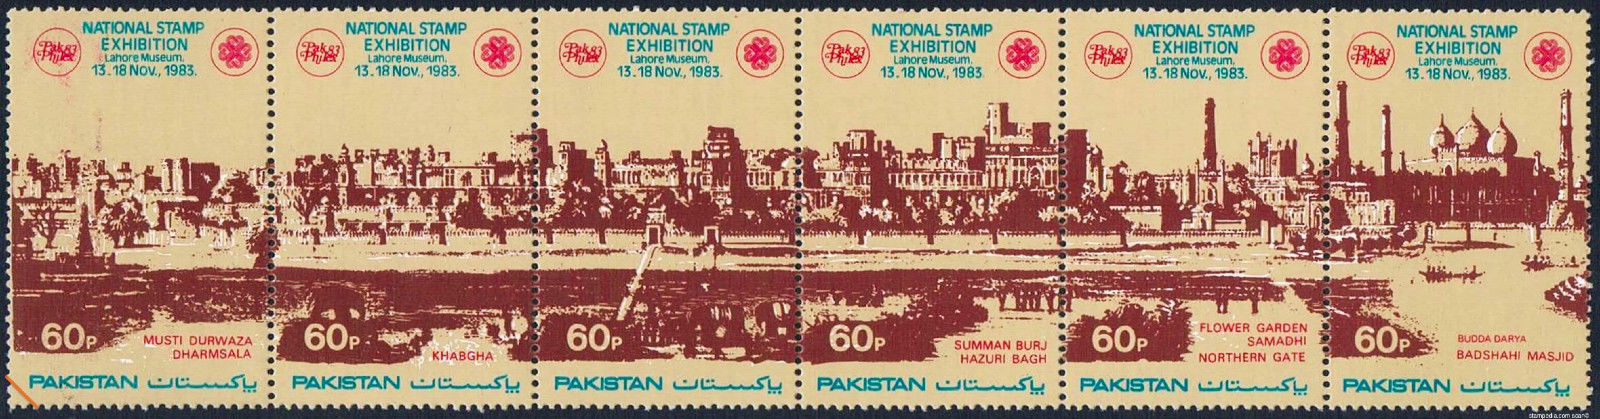 Pakistan Stamps 1983 National Stamp Exhibition